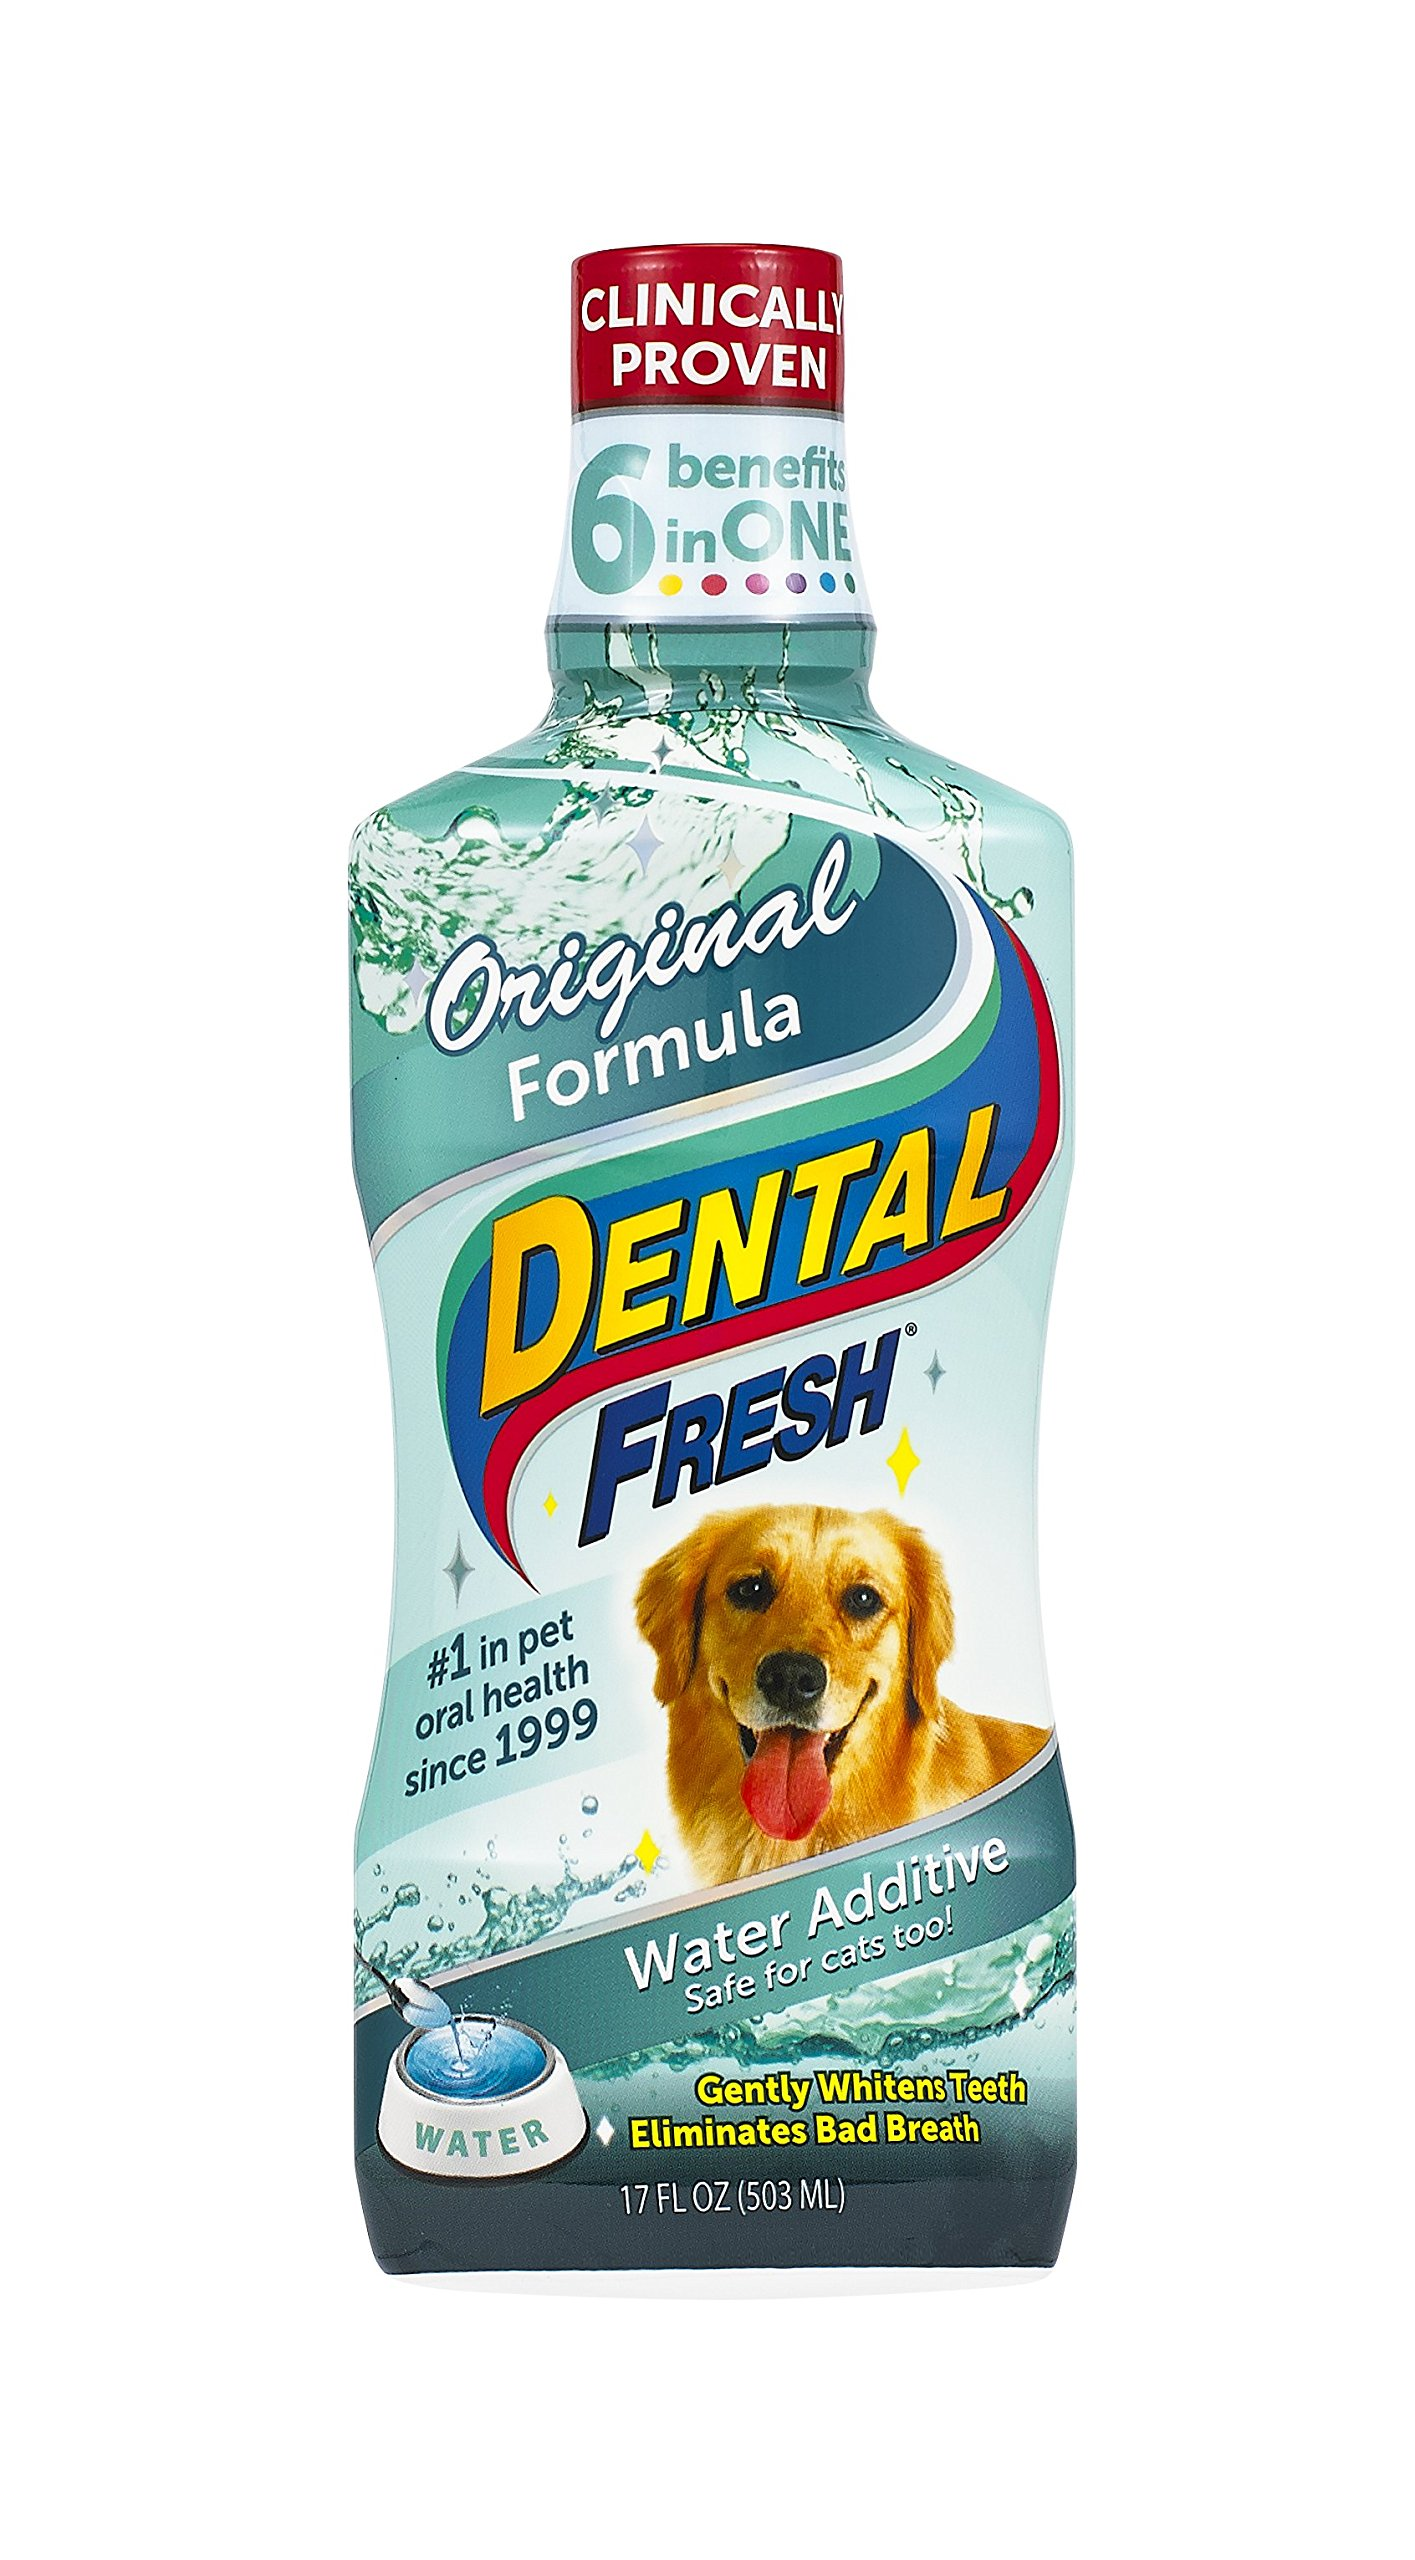 Dental Fresh Water Additive – Original Formula For Dogs – Clinicially Proven, Simply Add to Pet's Water Bowl to Whiten Teeth, Eliminate Bad Breath, and Improve Oral Health (17 oz)